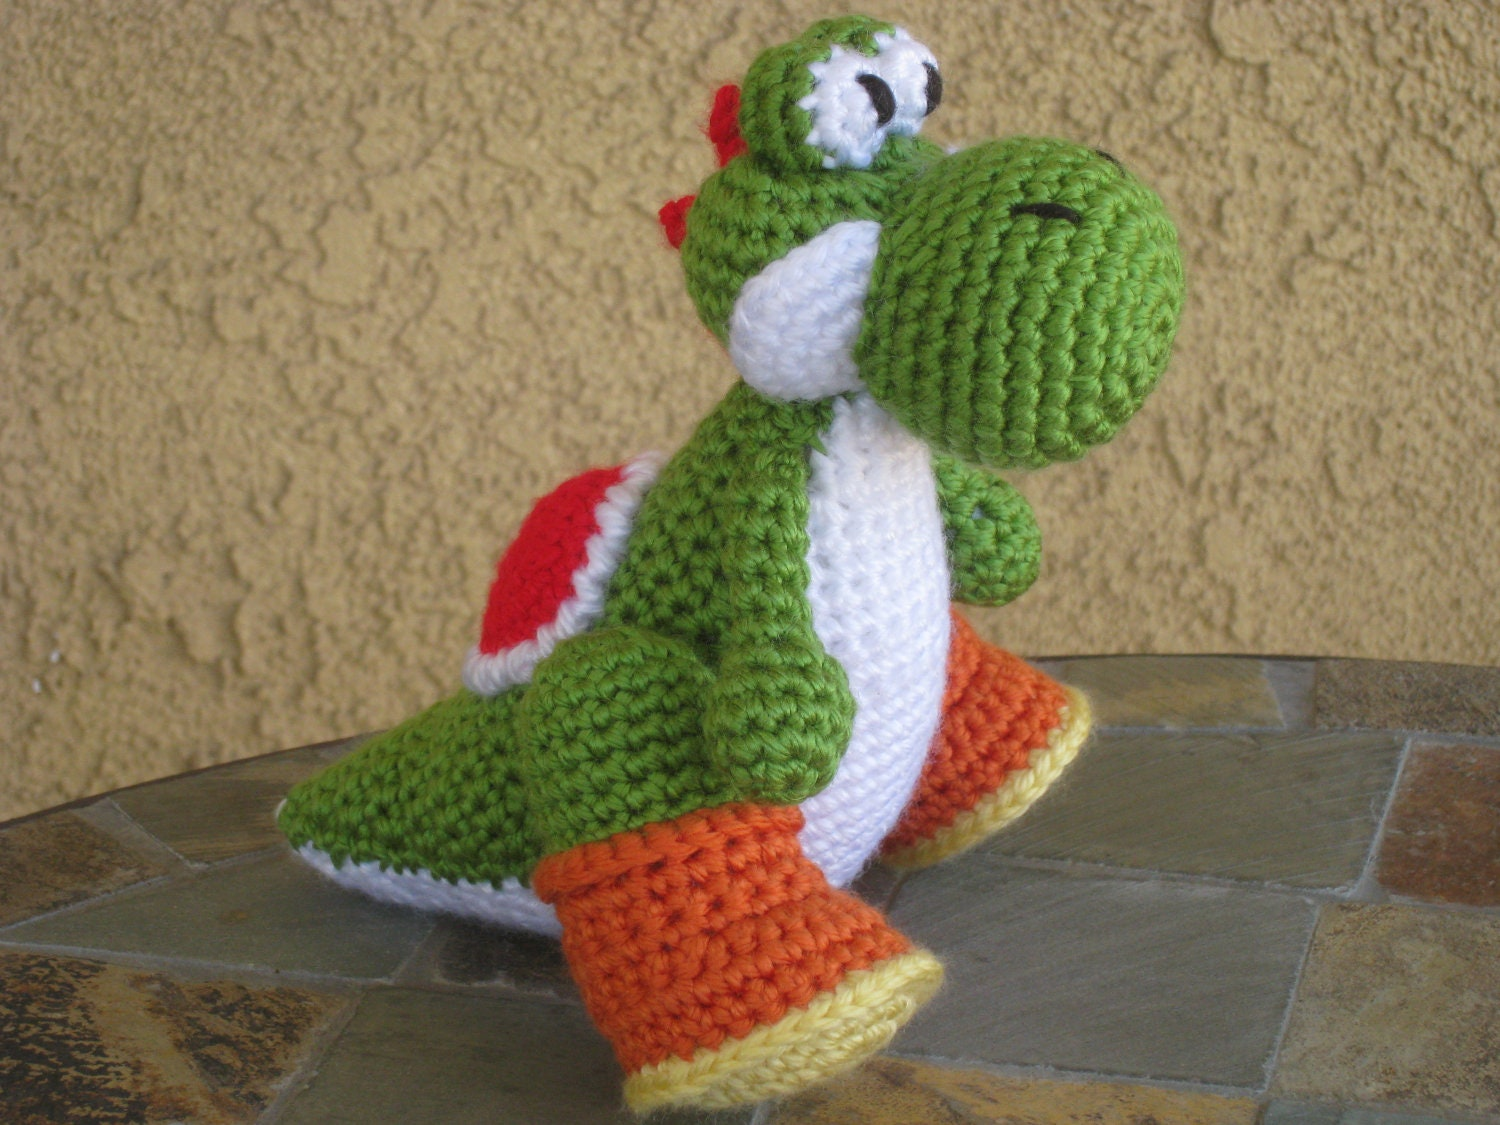 Amigurumi Free Patterns Beginners : CROCHET PATTERN Yoshi Plush Amigurumi Figurine Doll Stuffed